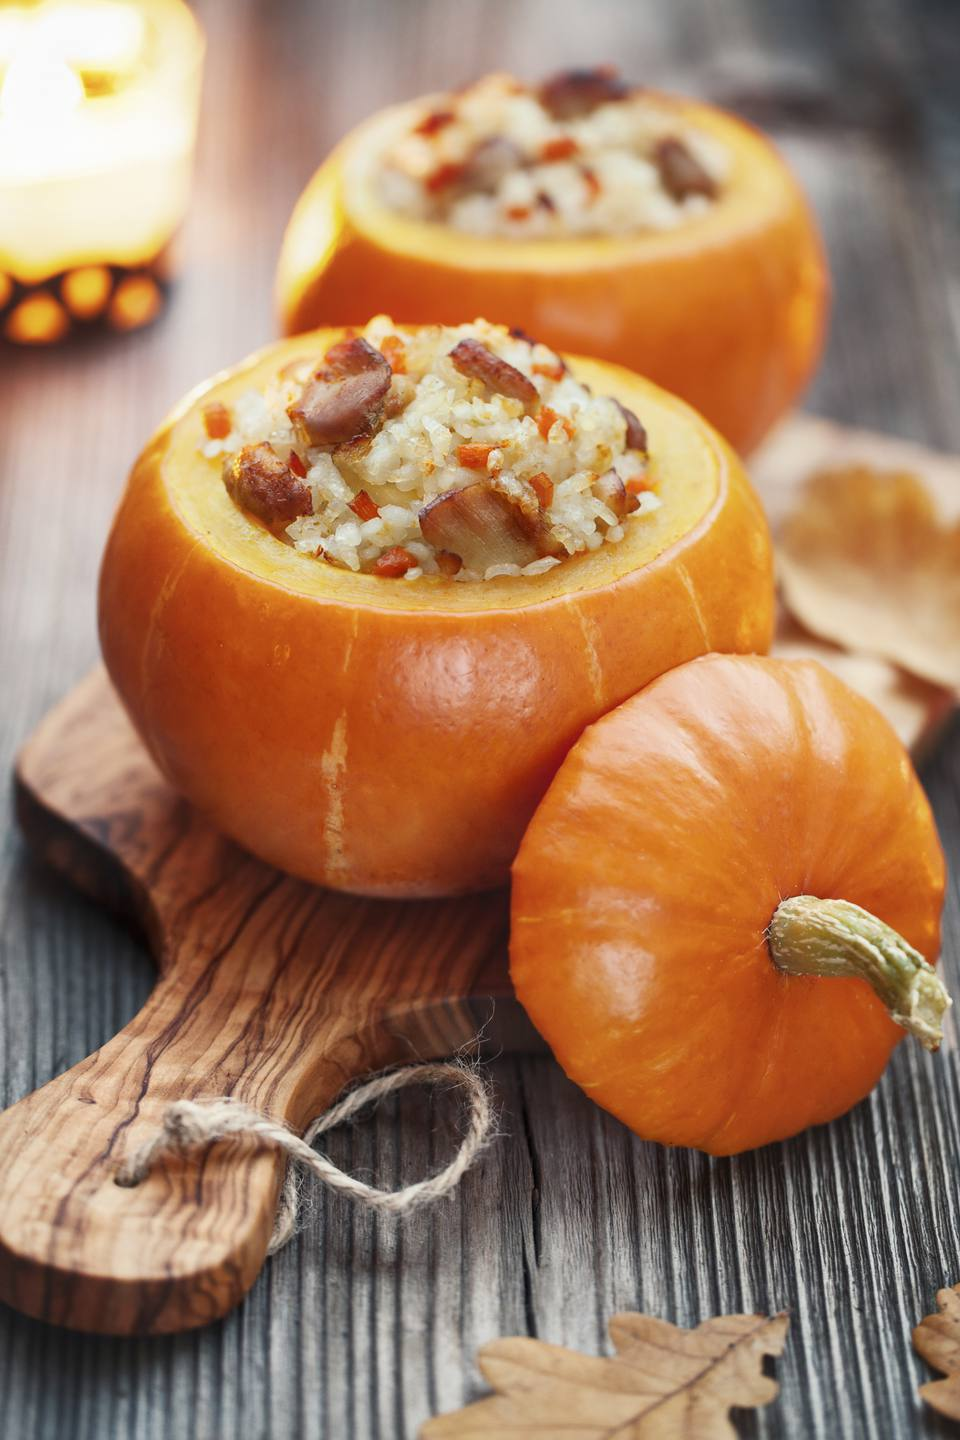 Roasted little pumpkins stuffed with chicken meat, vegetables an